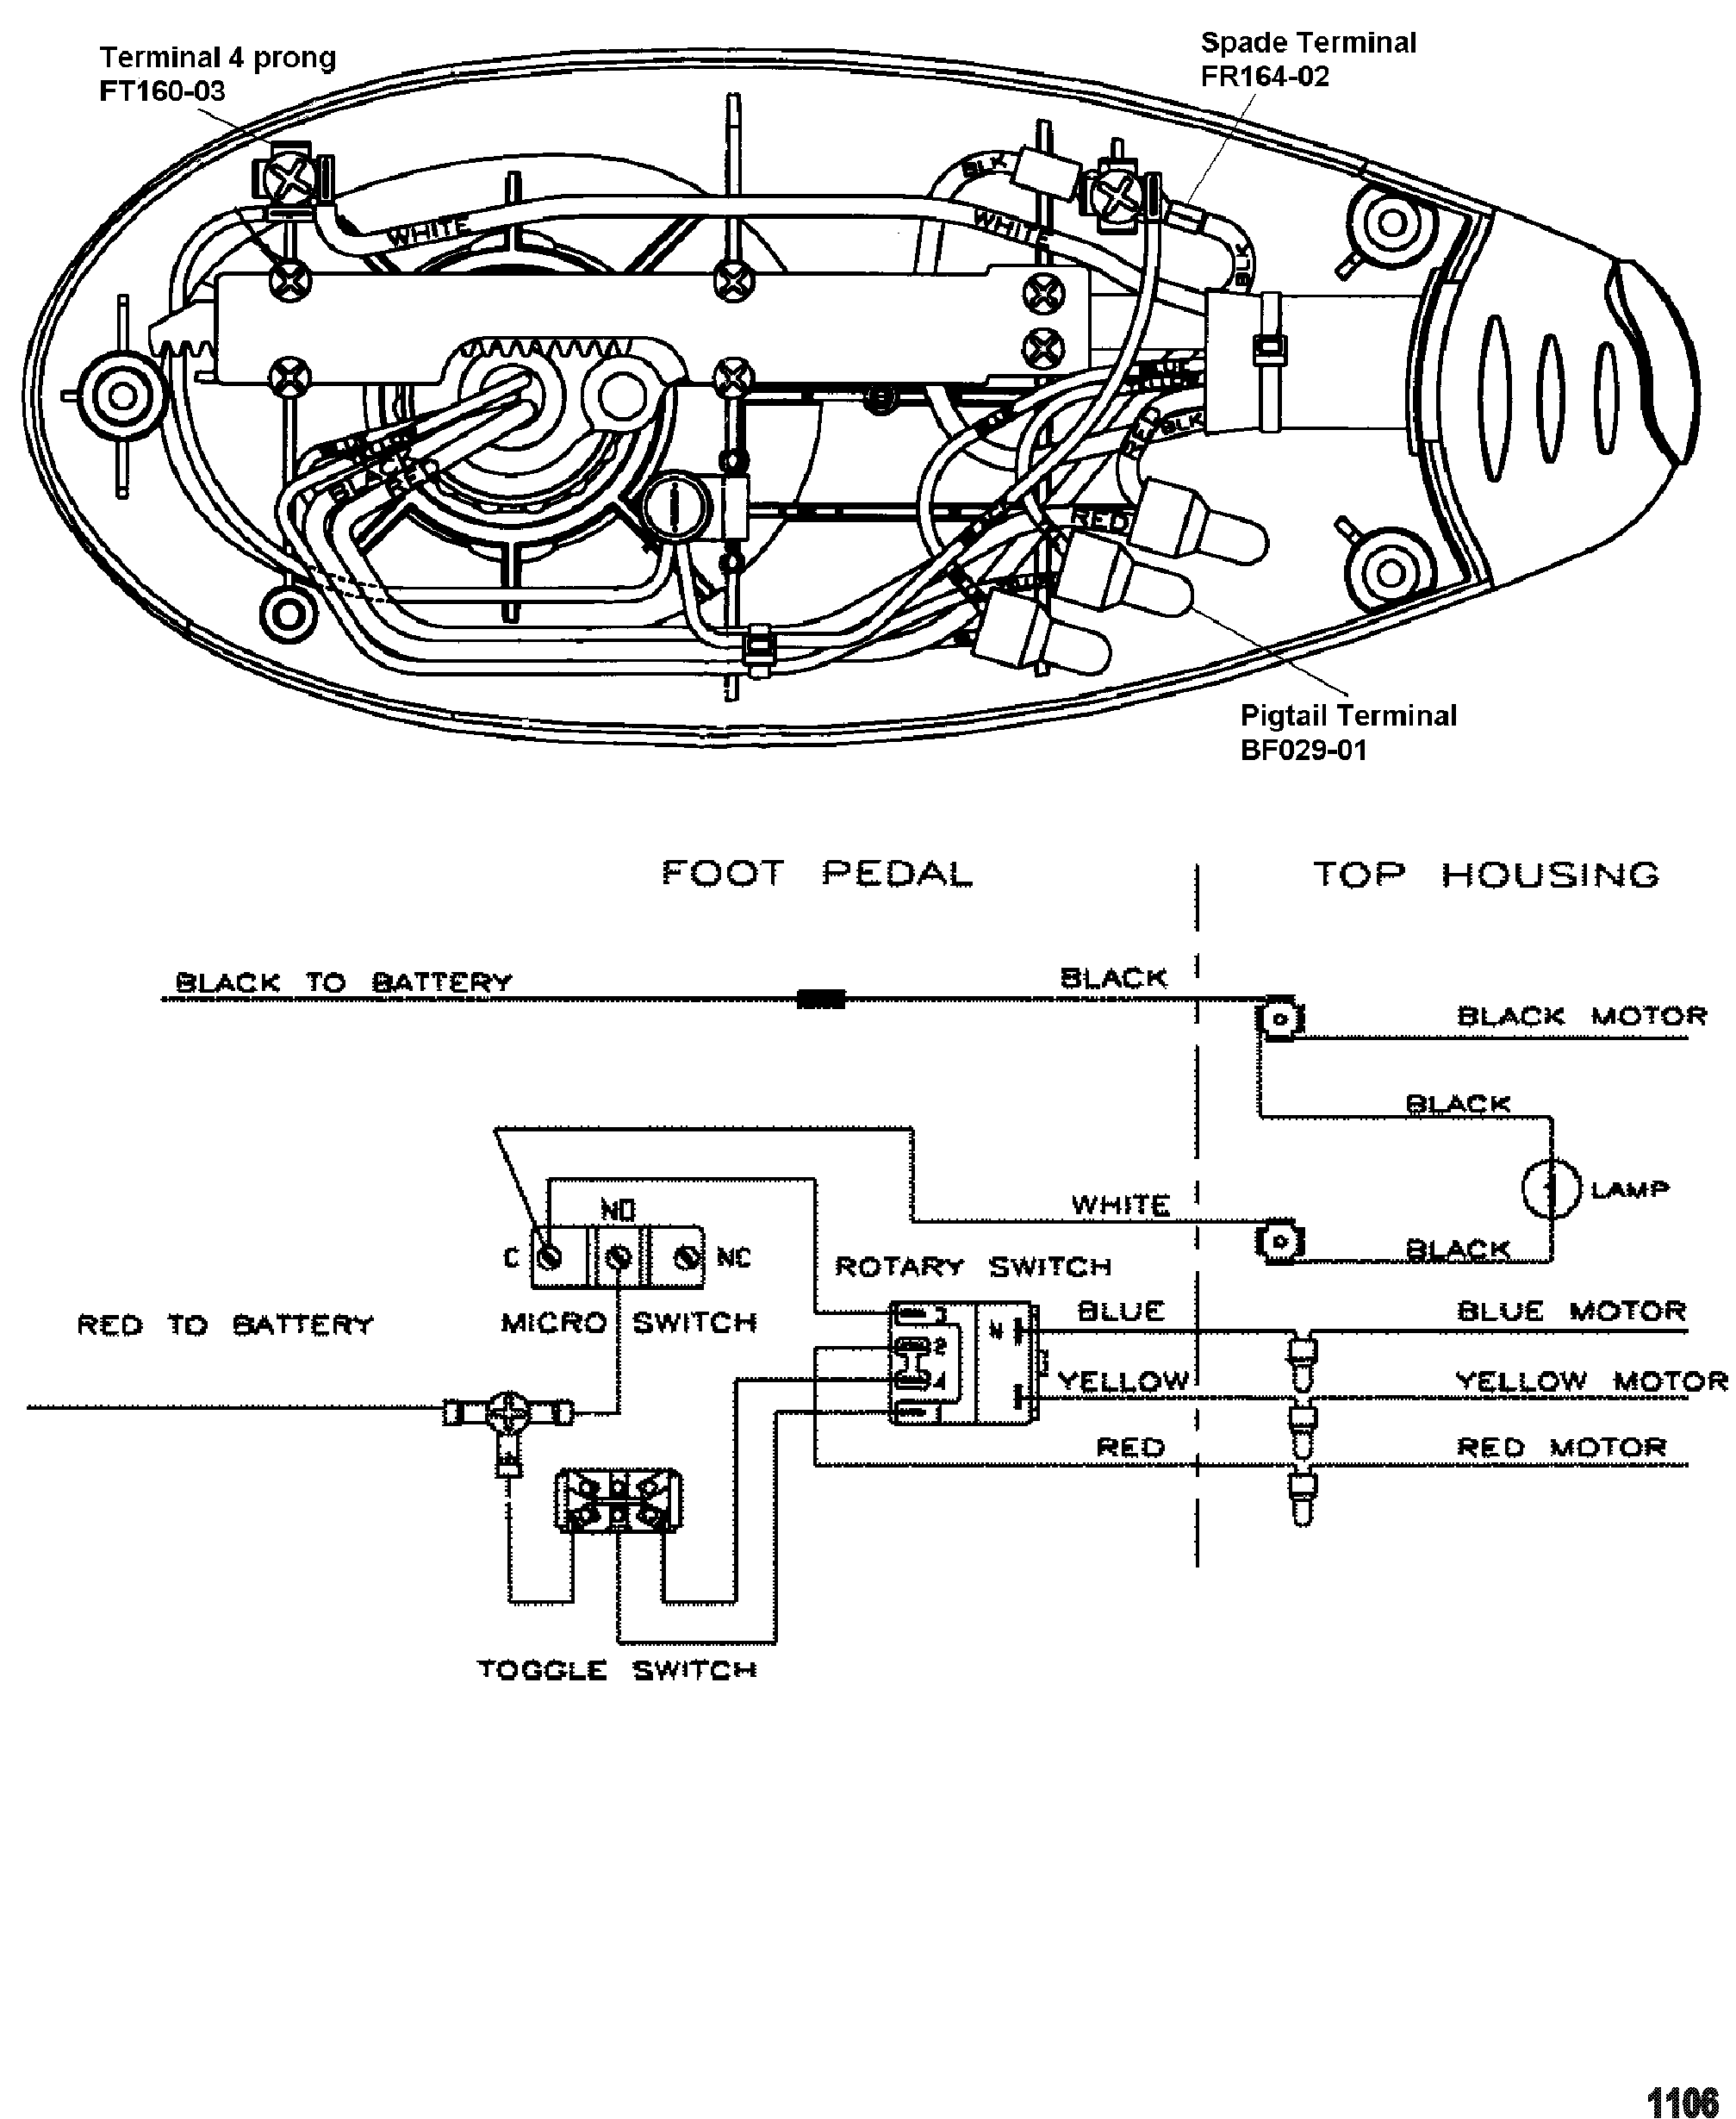 Trolling Motor Battery Wiring Diagram Mercury Motorguide Energy Series All Up Wire Diagrammodel Ef54 12 Volt